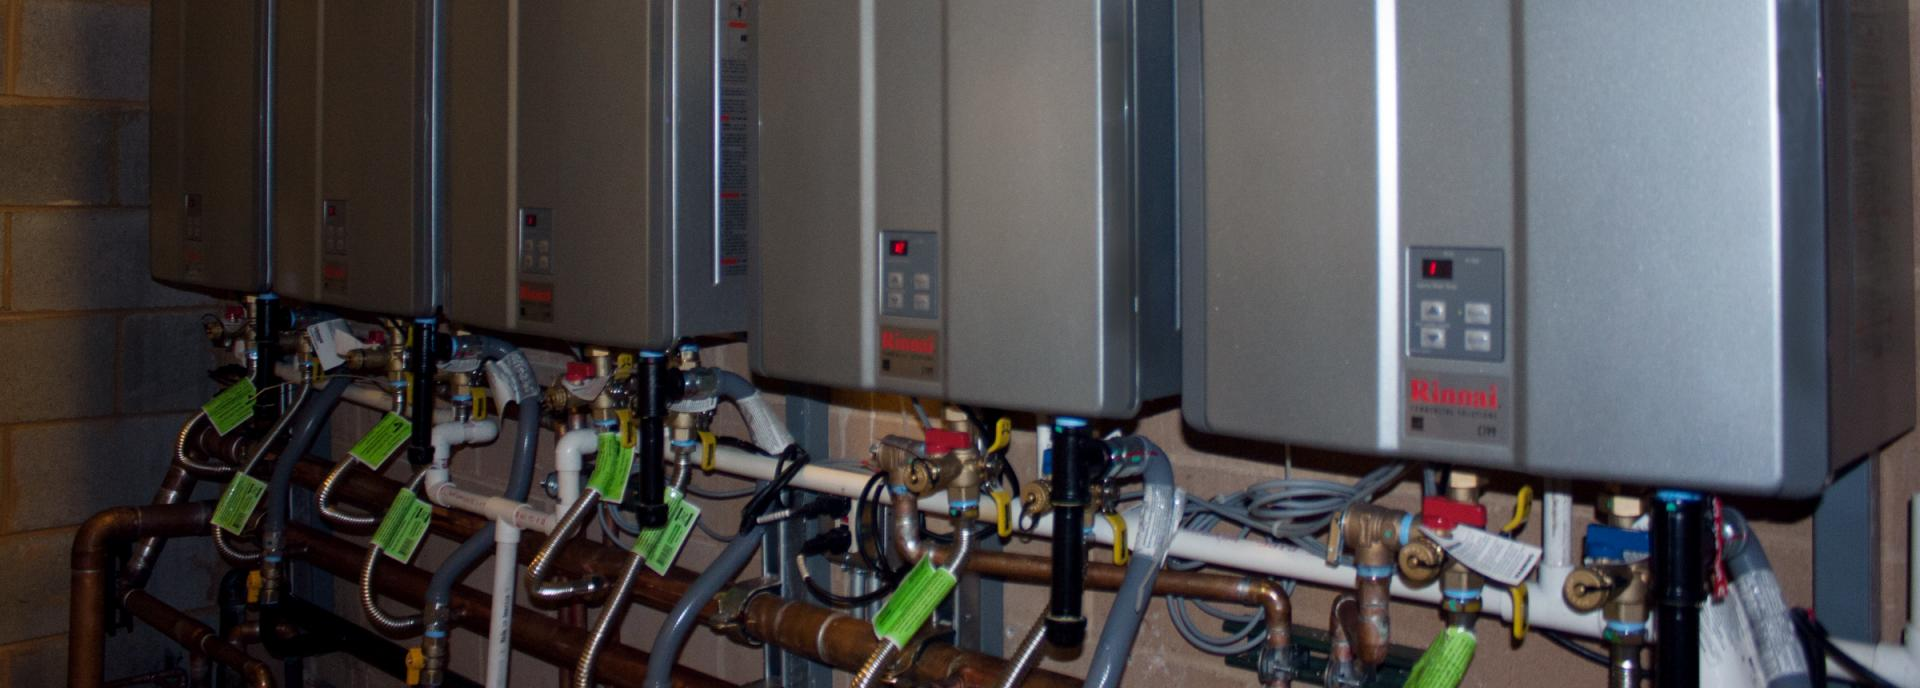 commercial tankless water heaters [ 1920 x 688 Pixel ]